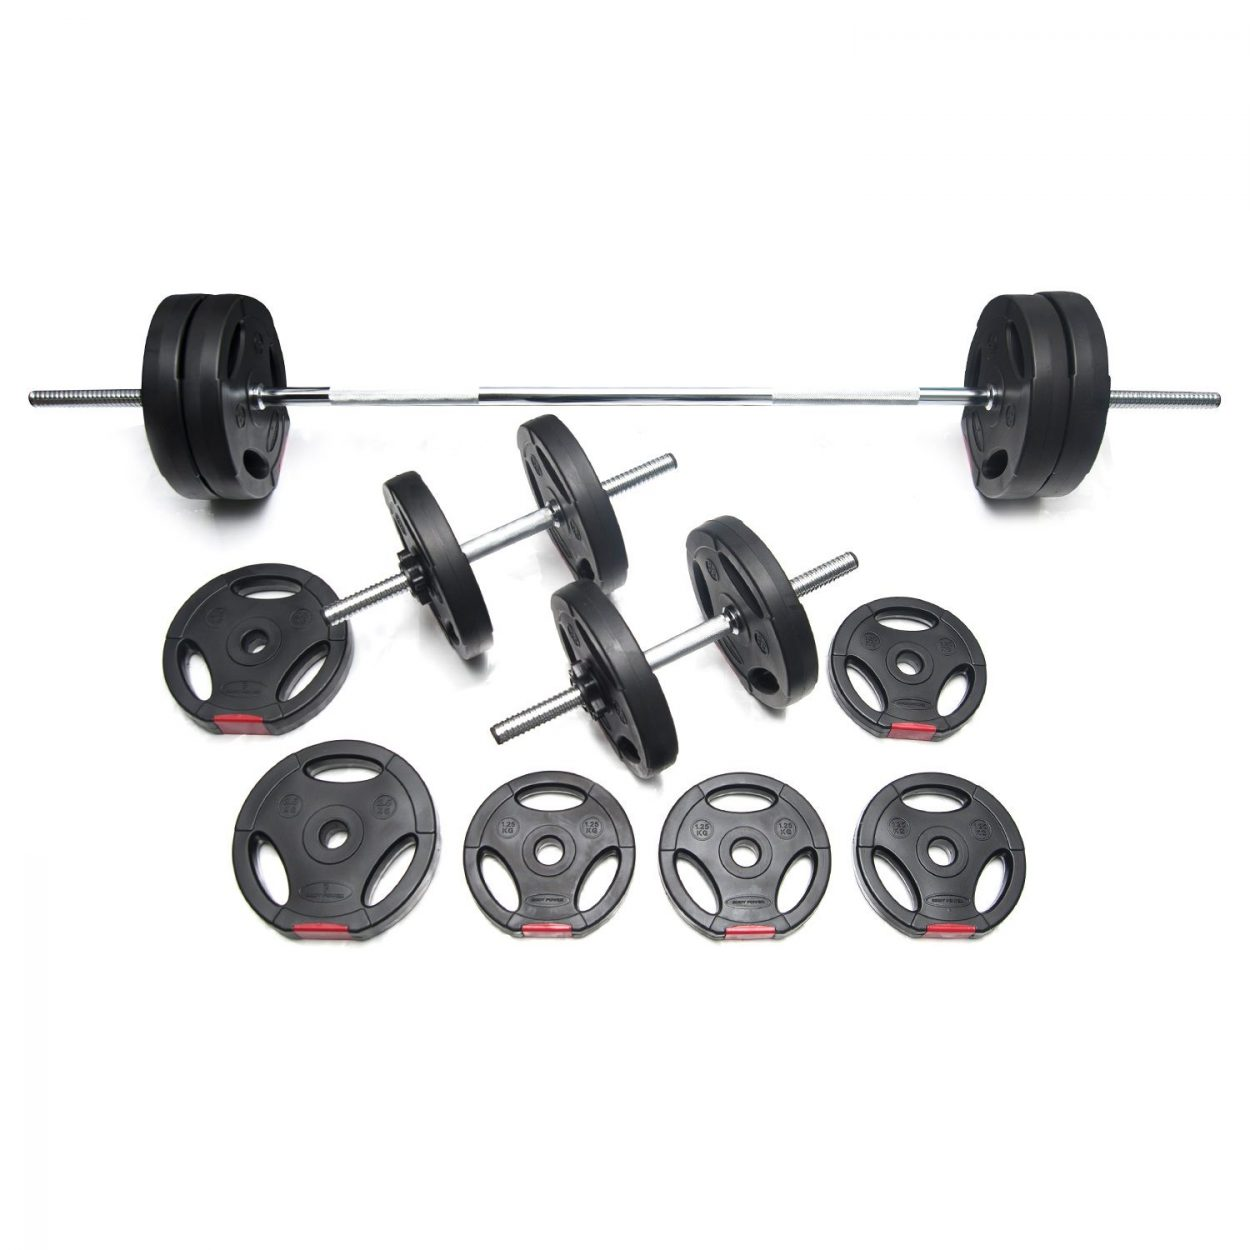 Body Power 42kg Tri-Grip Vinyl Weight Set with 2 Piece Bar